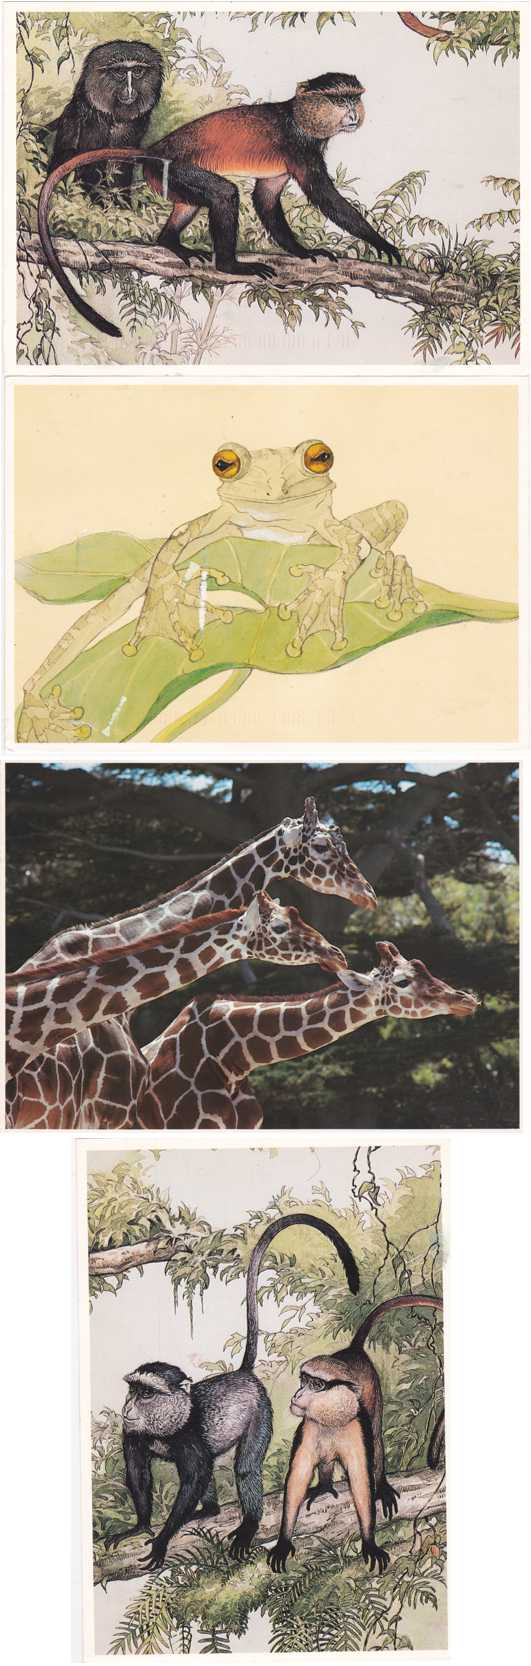 (4 cards) Exotic Wildlife Monkeys Giraffes Frog - Paintings and Photo